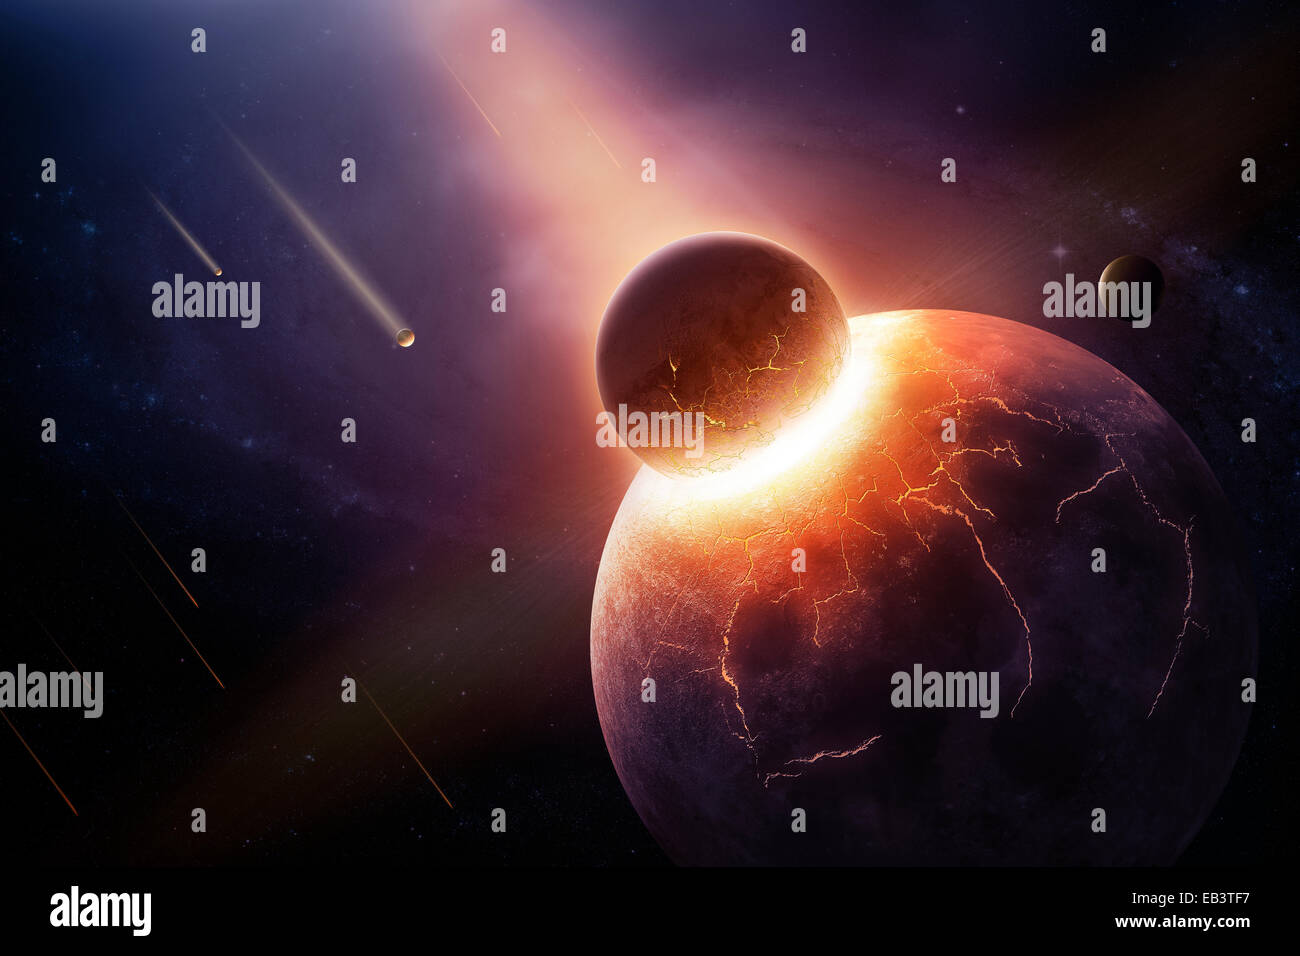 Earth destroyed in collision - 3D artwork illustration of planetary collision - Stock Image